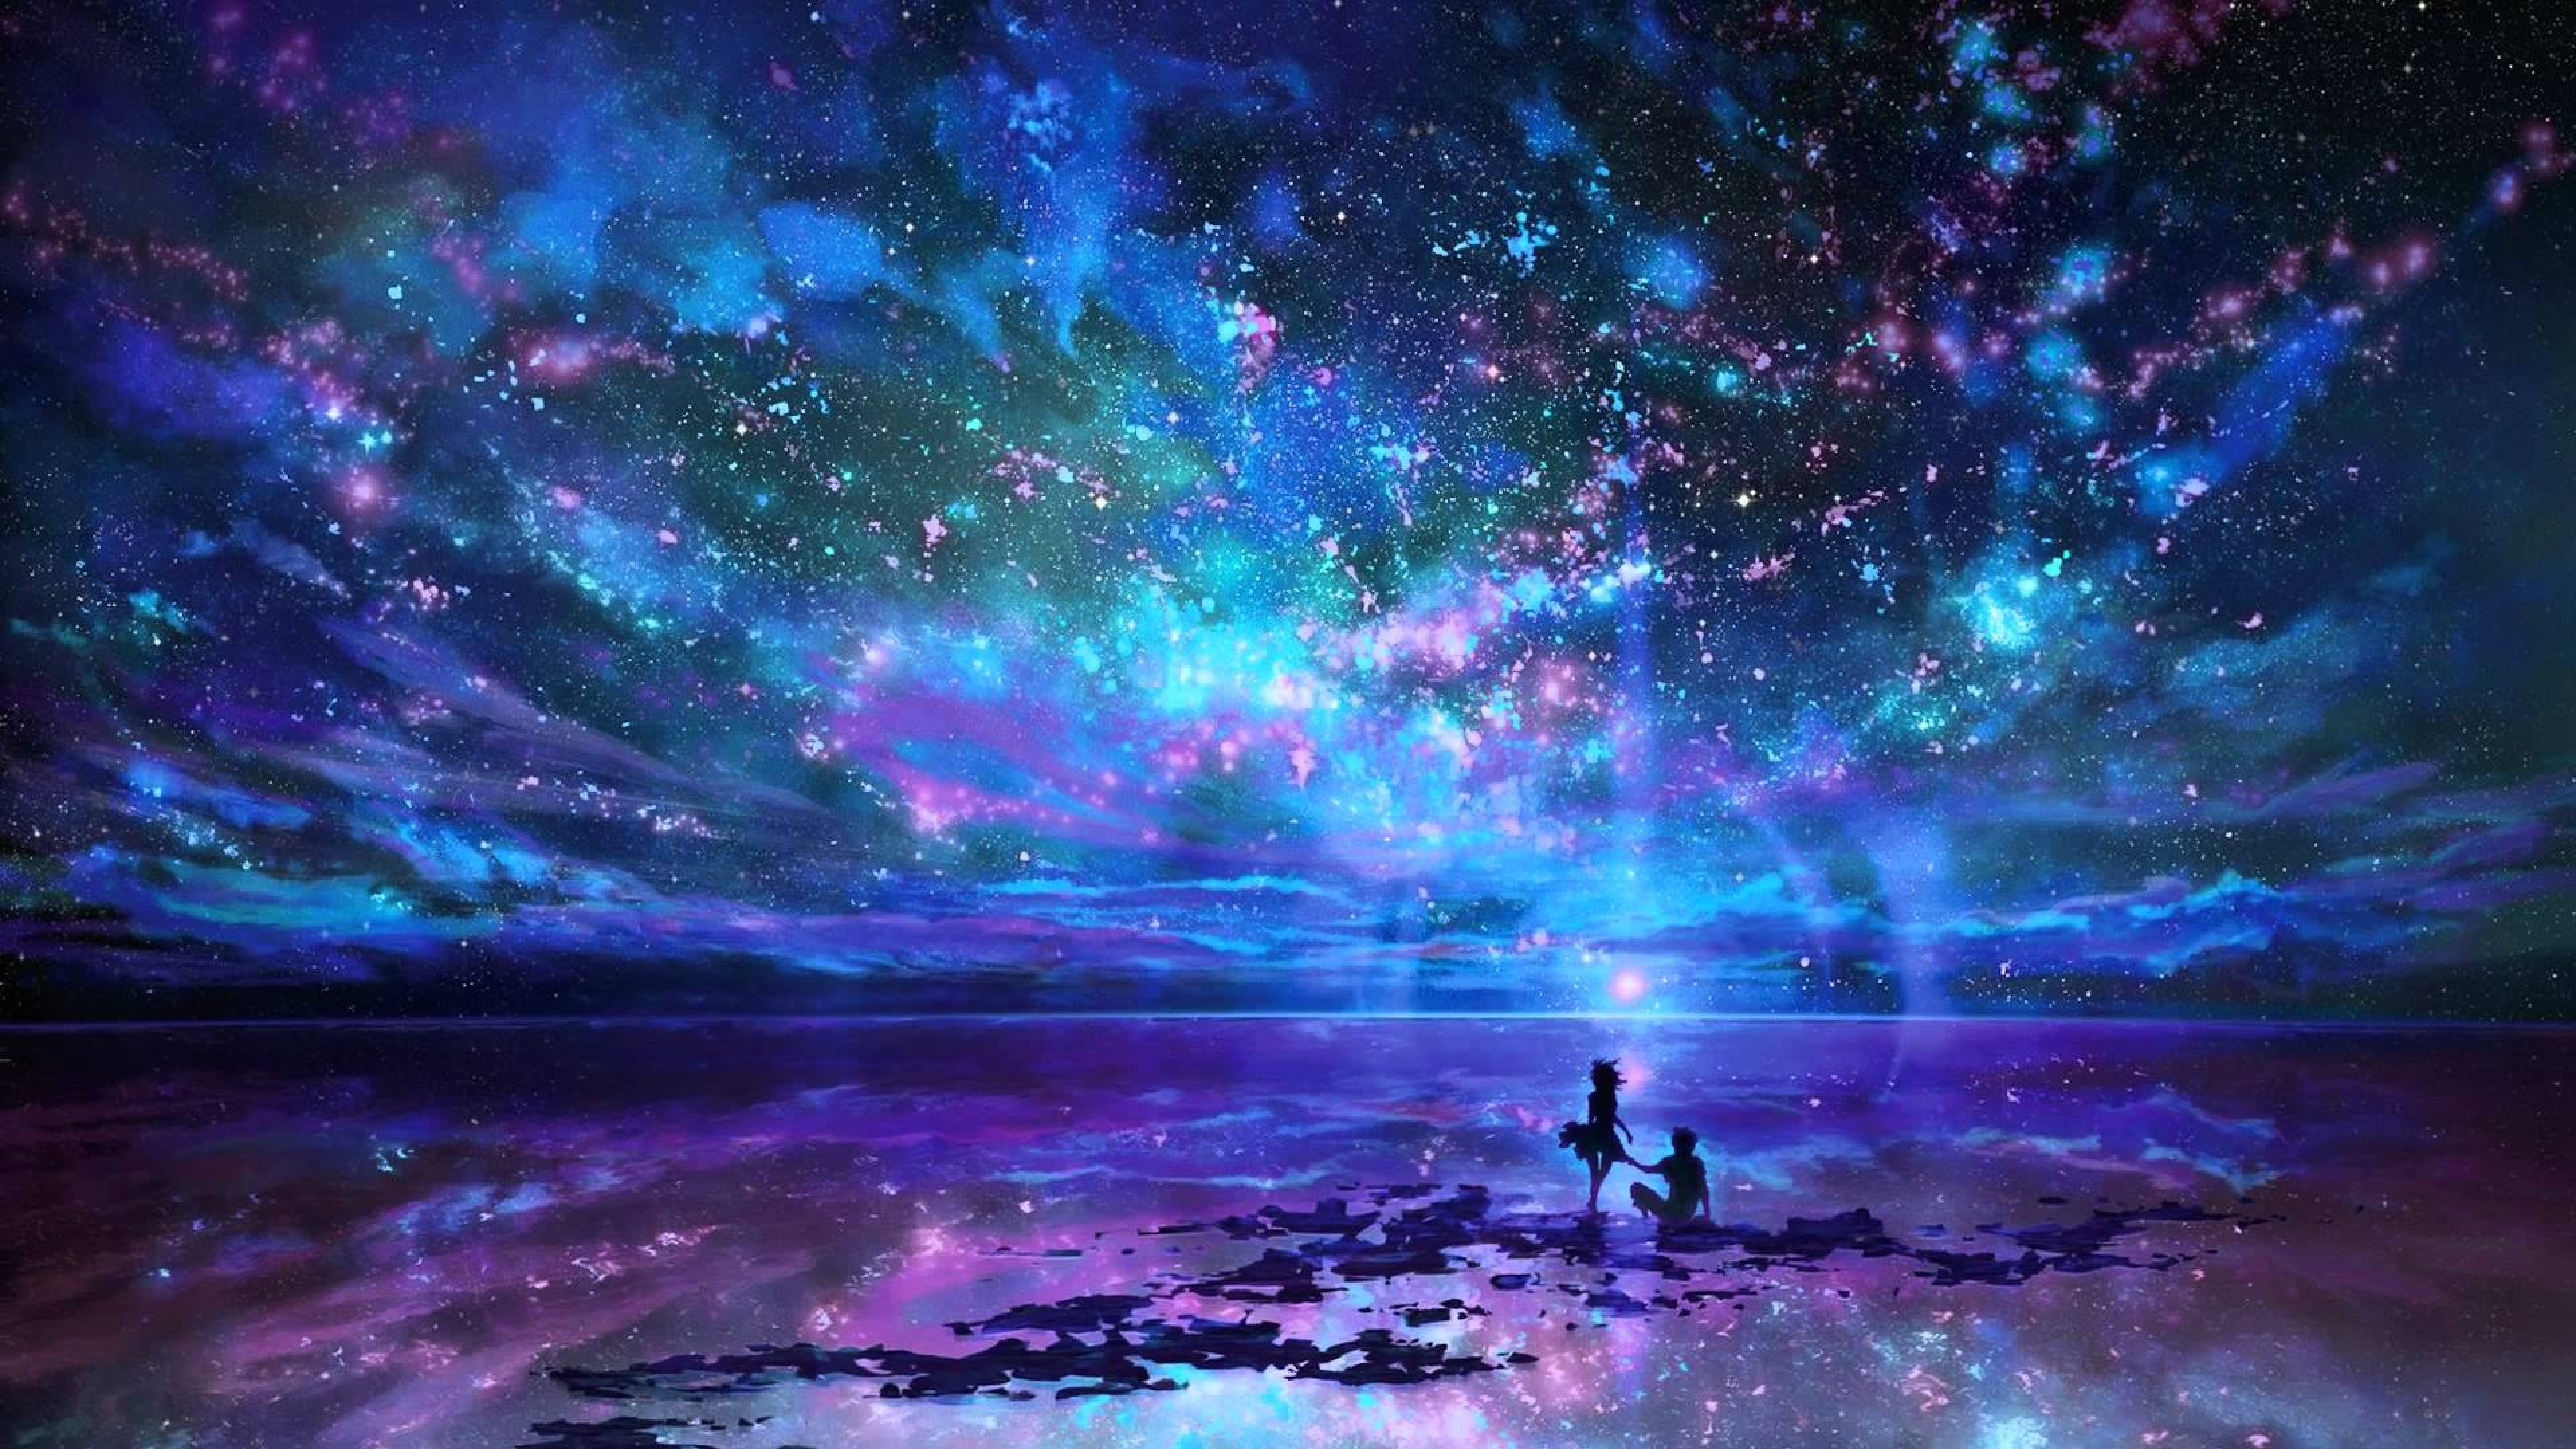 Res: 3840x2160, Free Download HD Lovers in Fantasy World Wallpaper